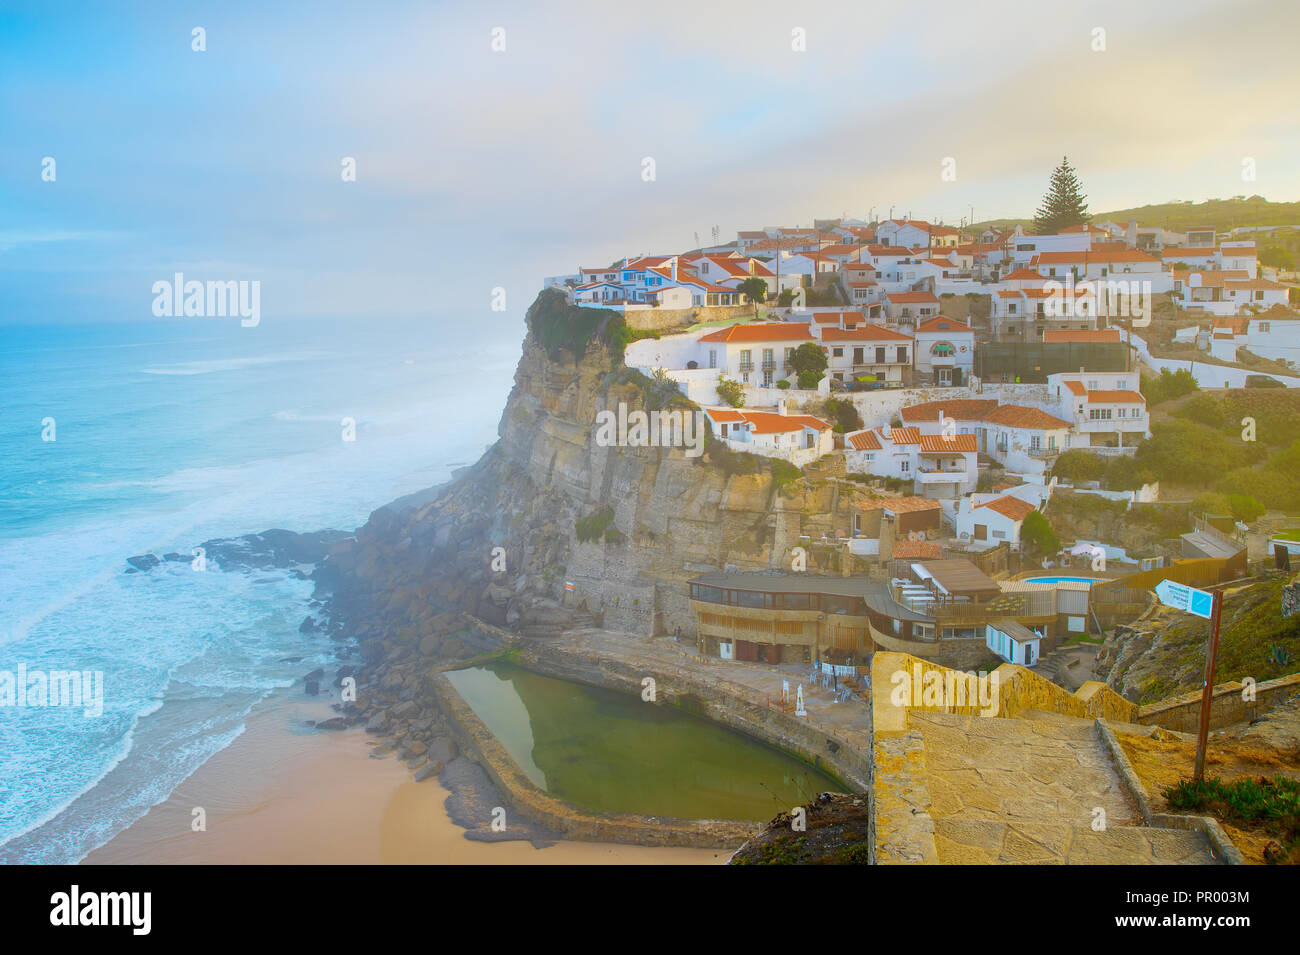 View of Azenha do Mar at sunrise. Portugal - Stock Image